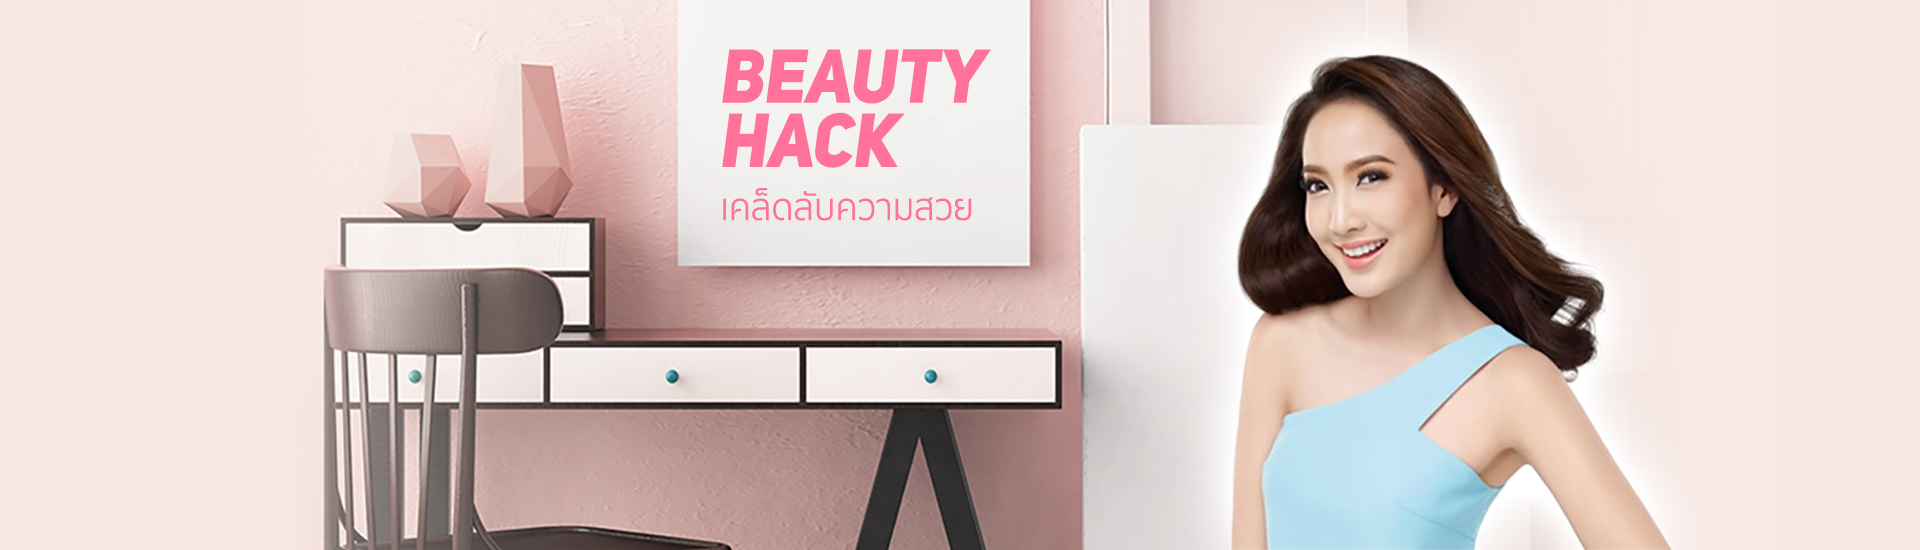 Banner_Beauty-hack